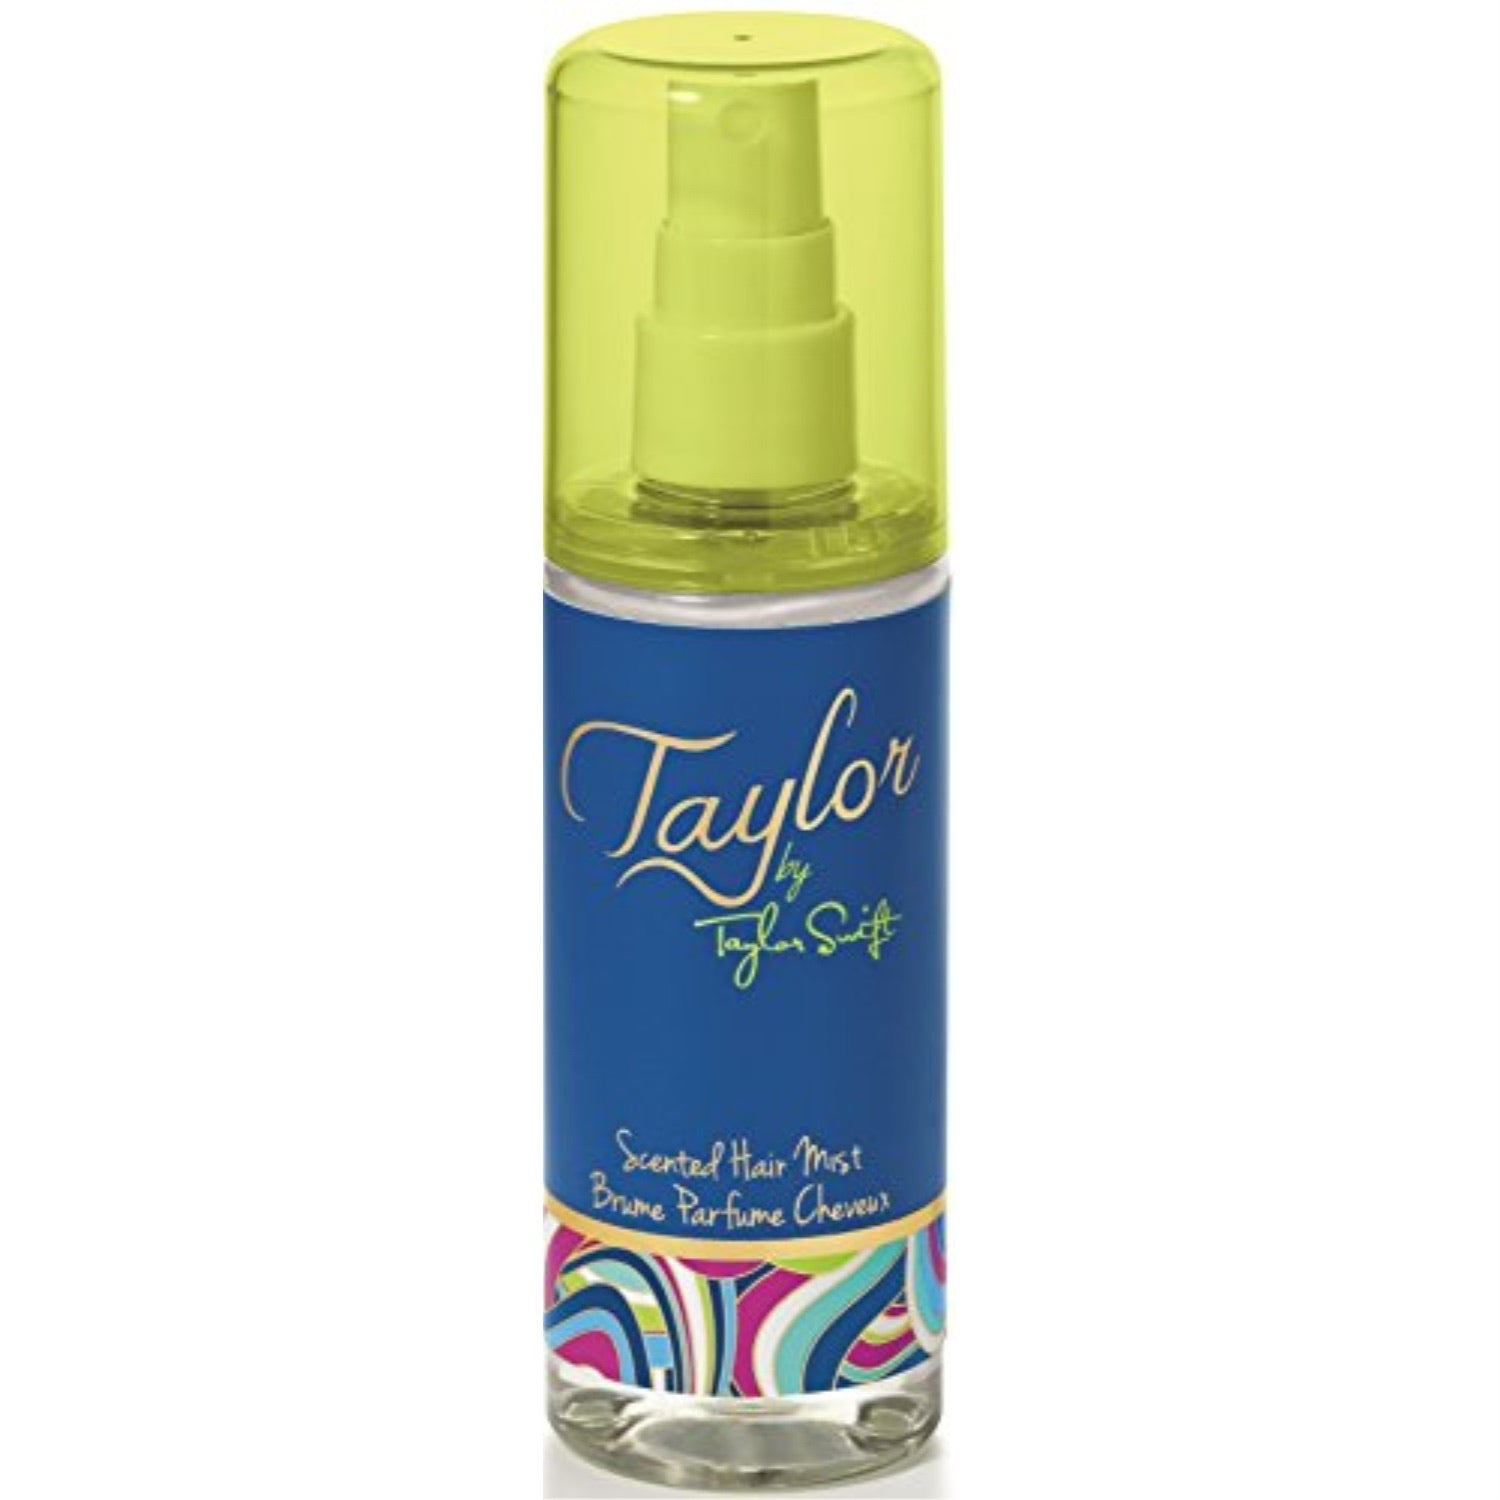 Taylor by Taylor Swift Hair Mist 125ml